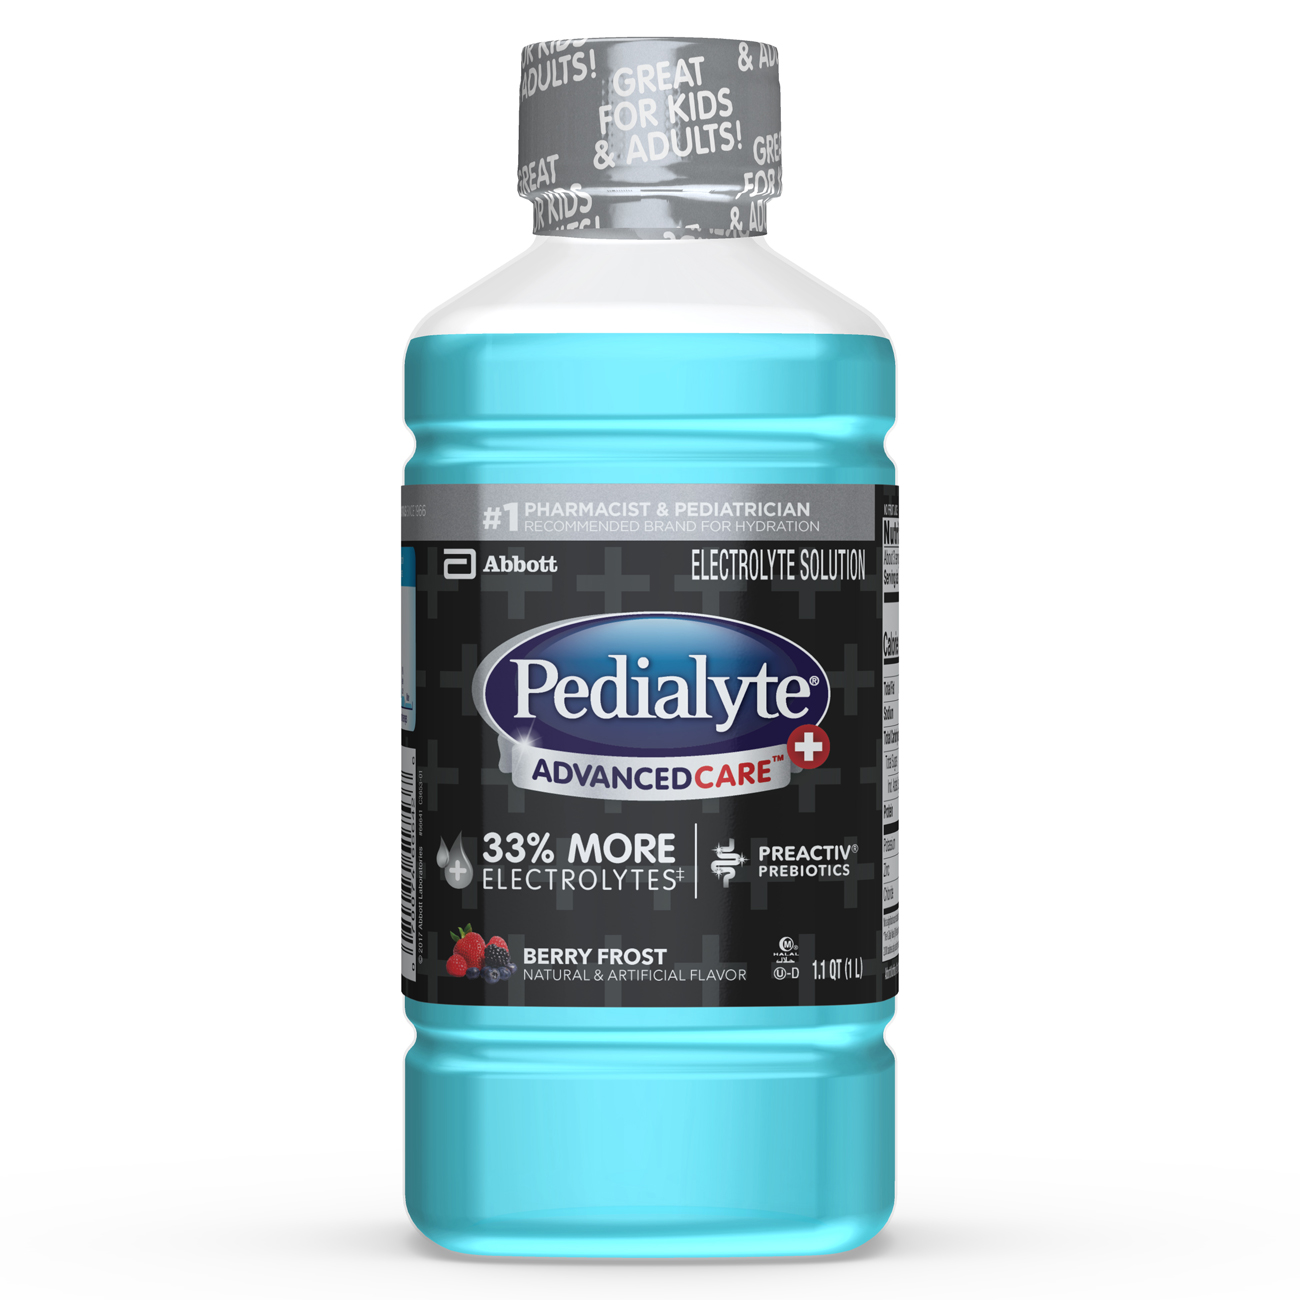 Pedialyte AdvancedCare Plus Electrolyte Solution Berry Frost 1.1 qt Bottle